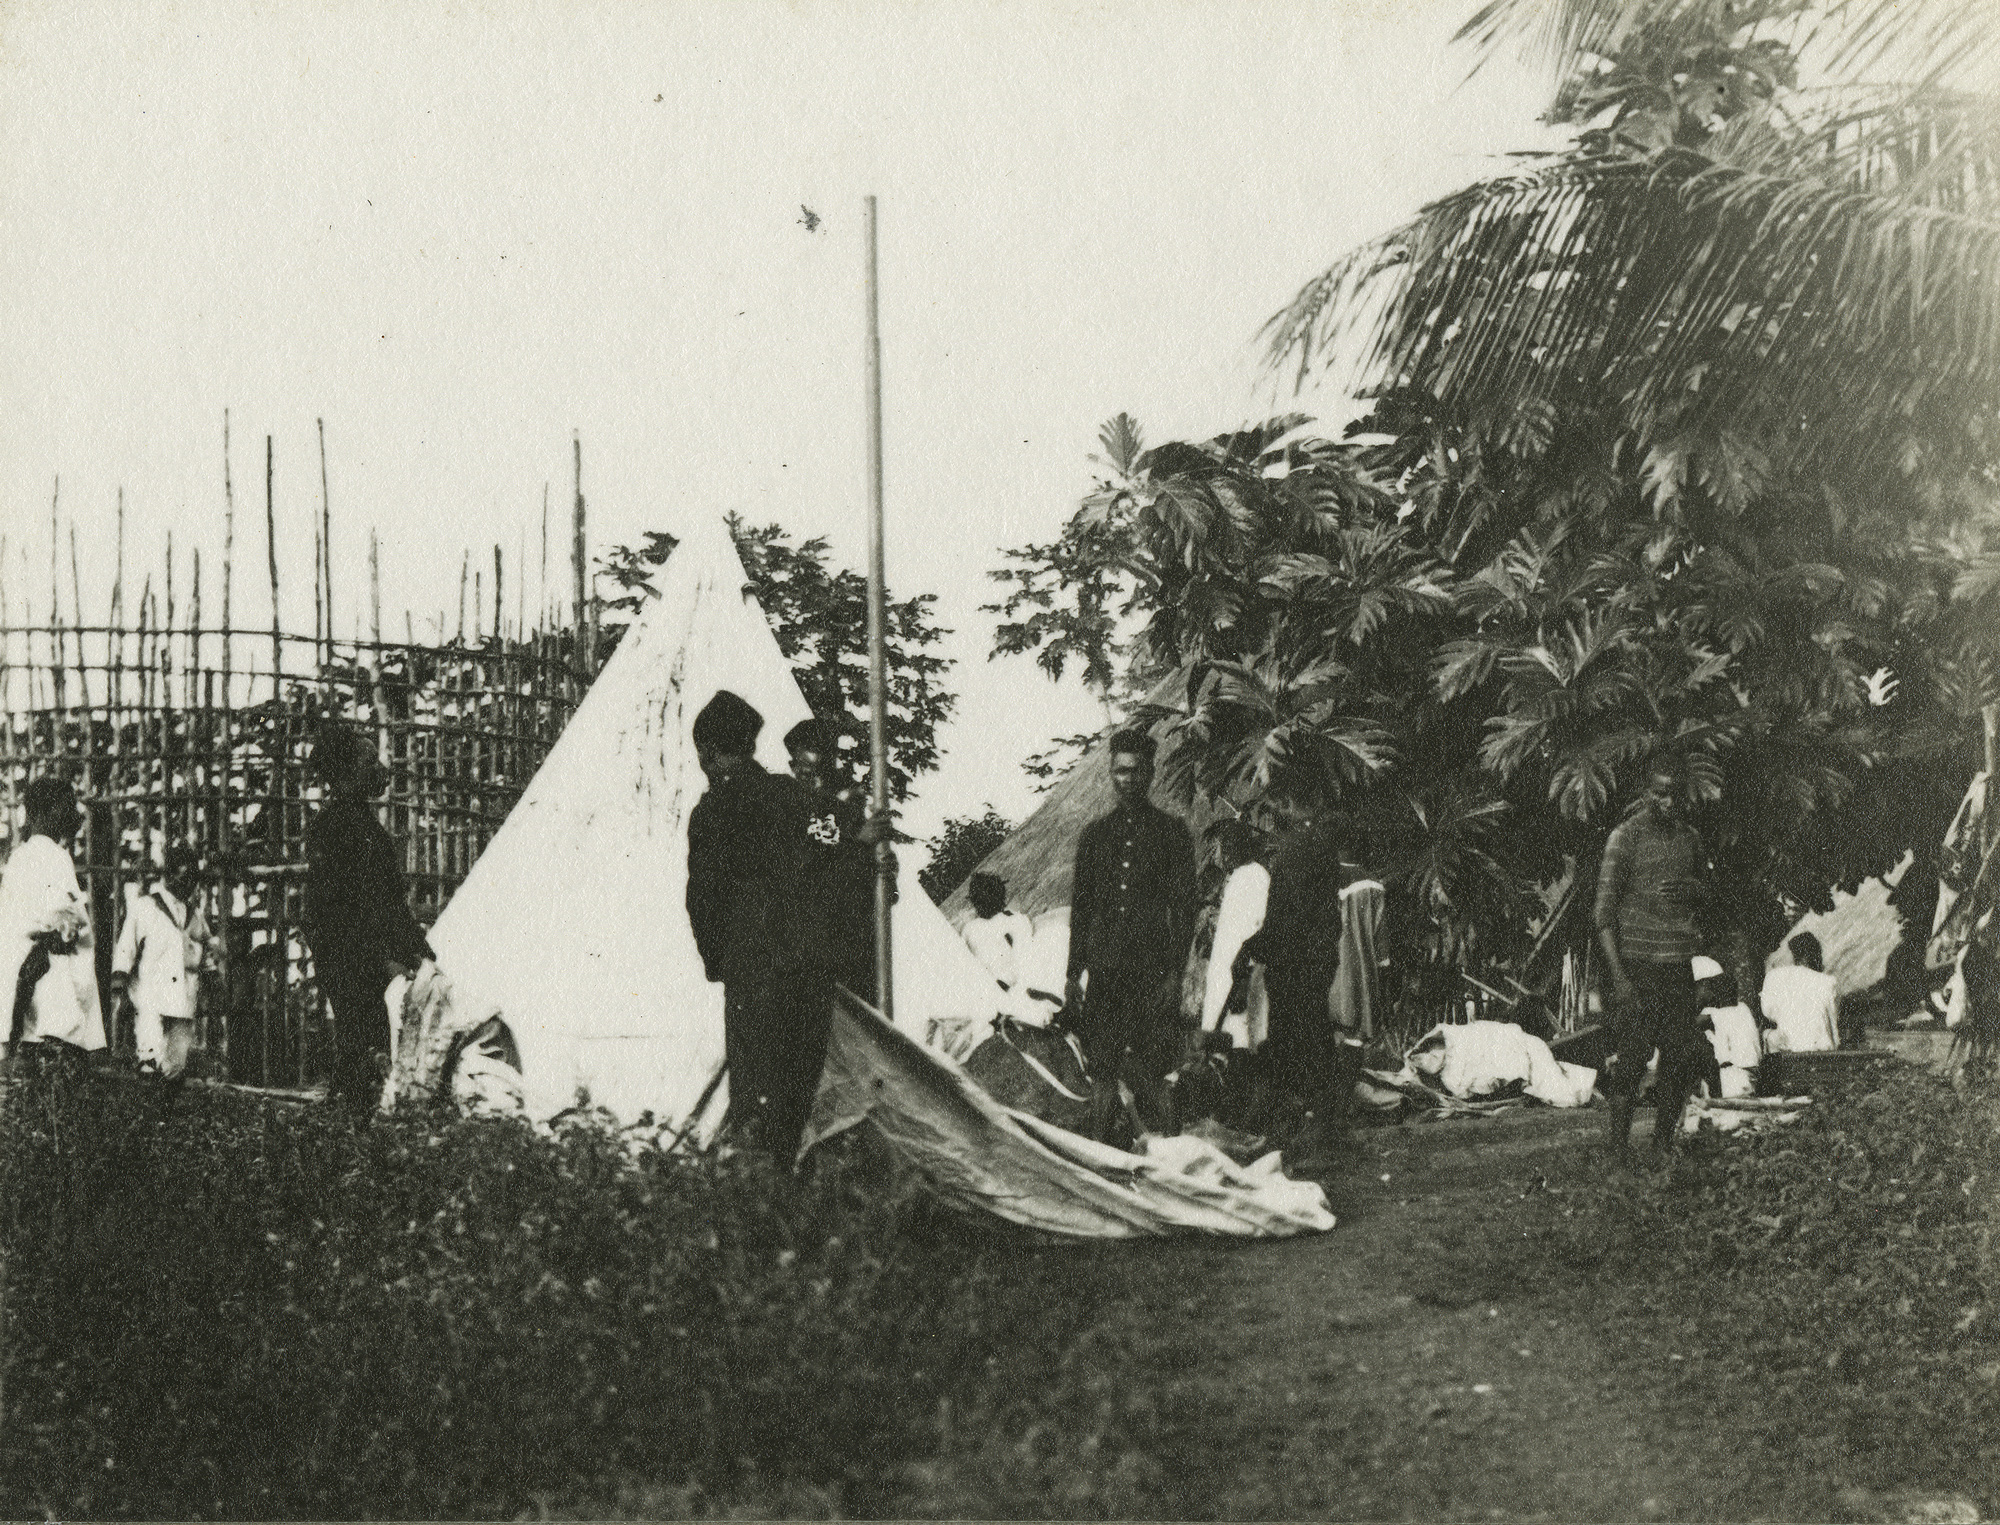 Folio 19, Photo #3 Pitching tents and preparing camp.